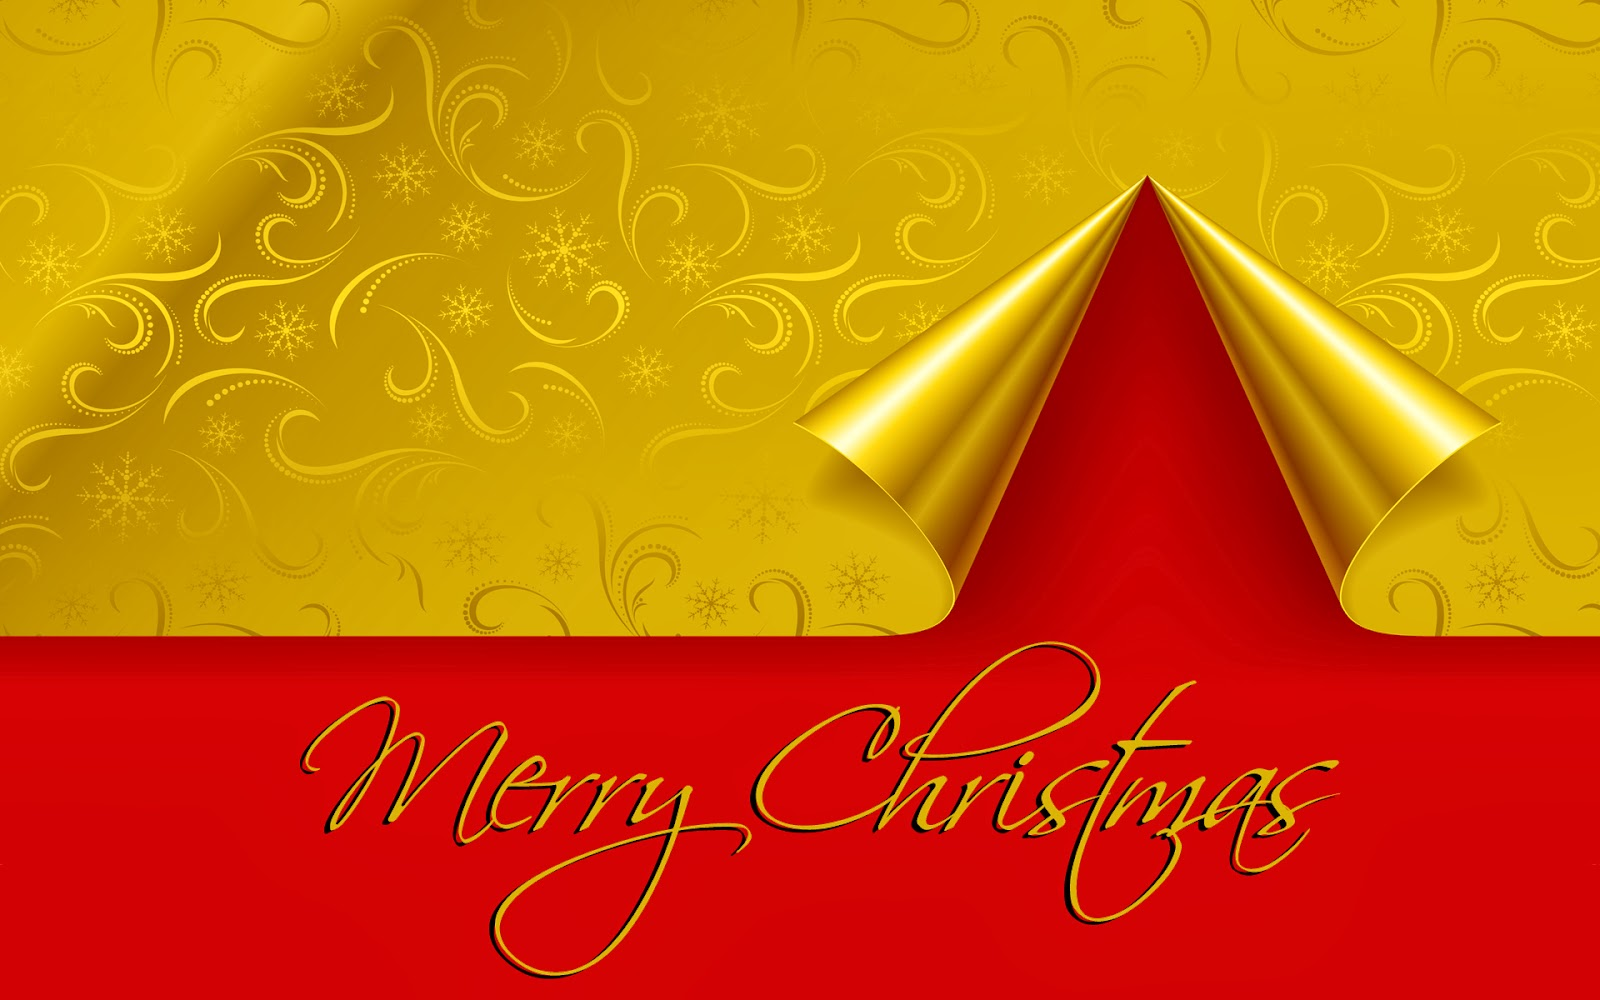 christmas greeting card messages hd wallpapers